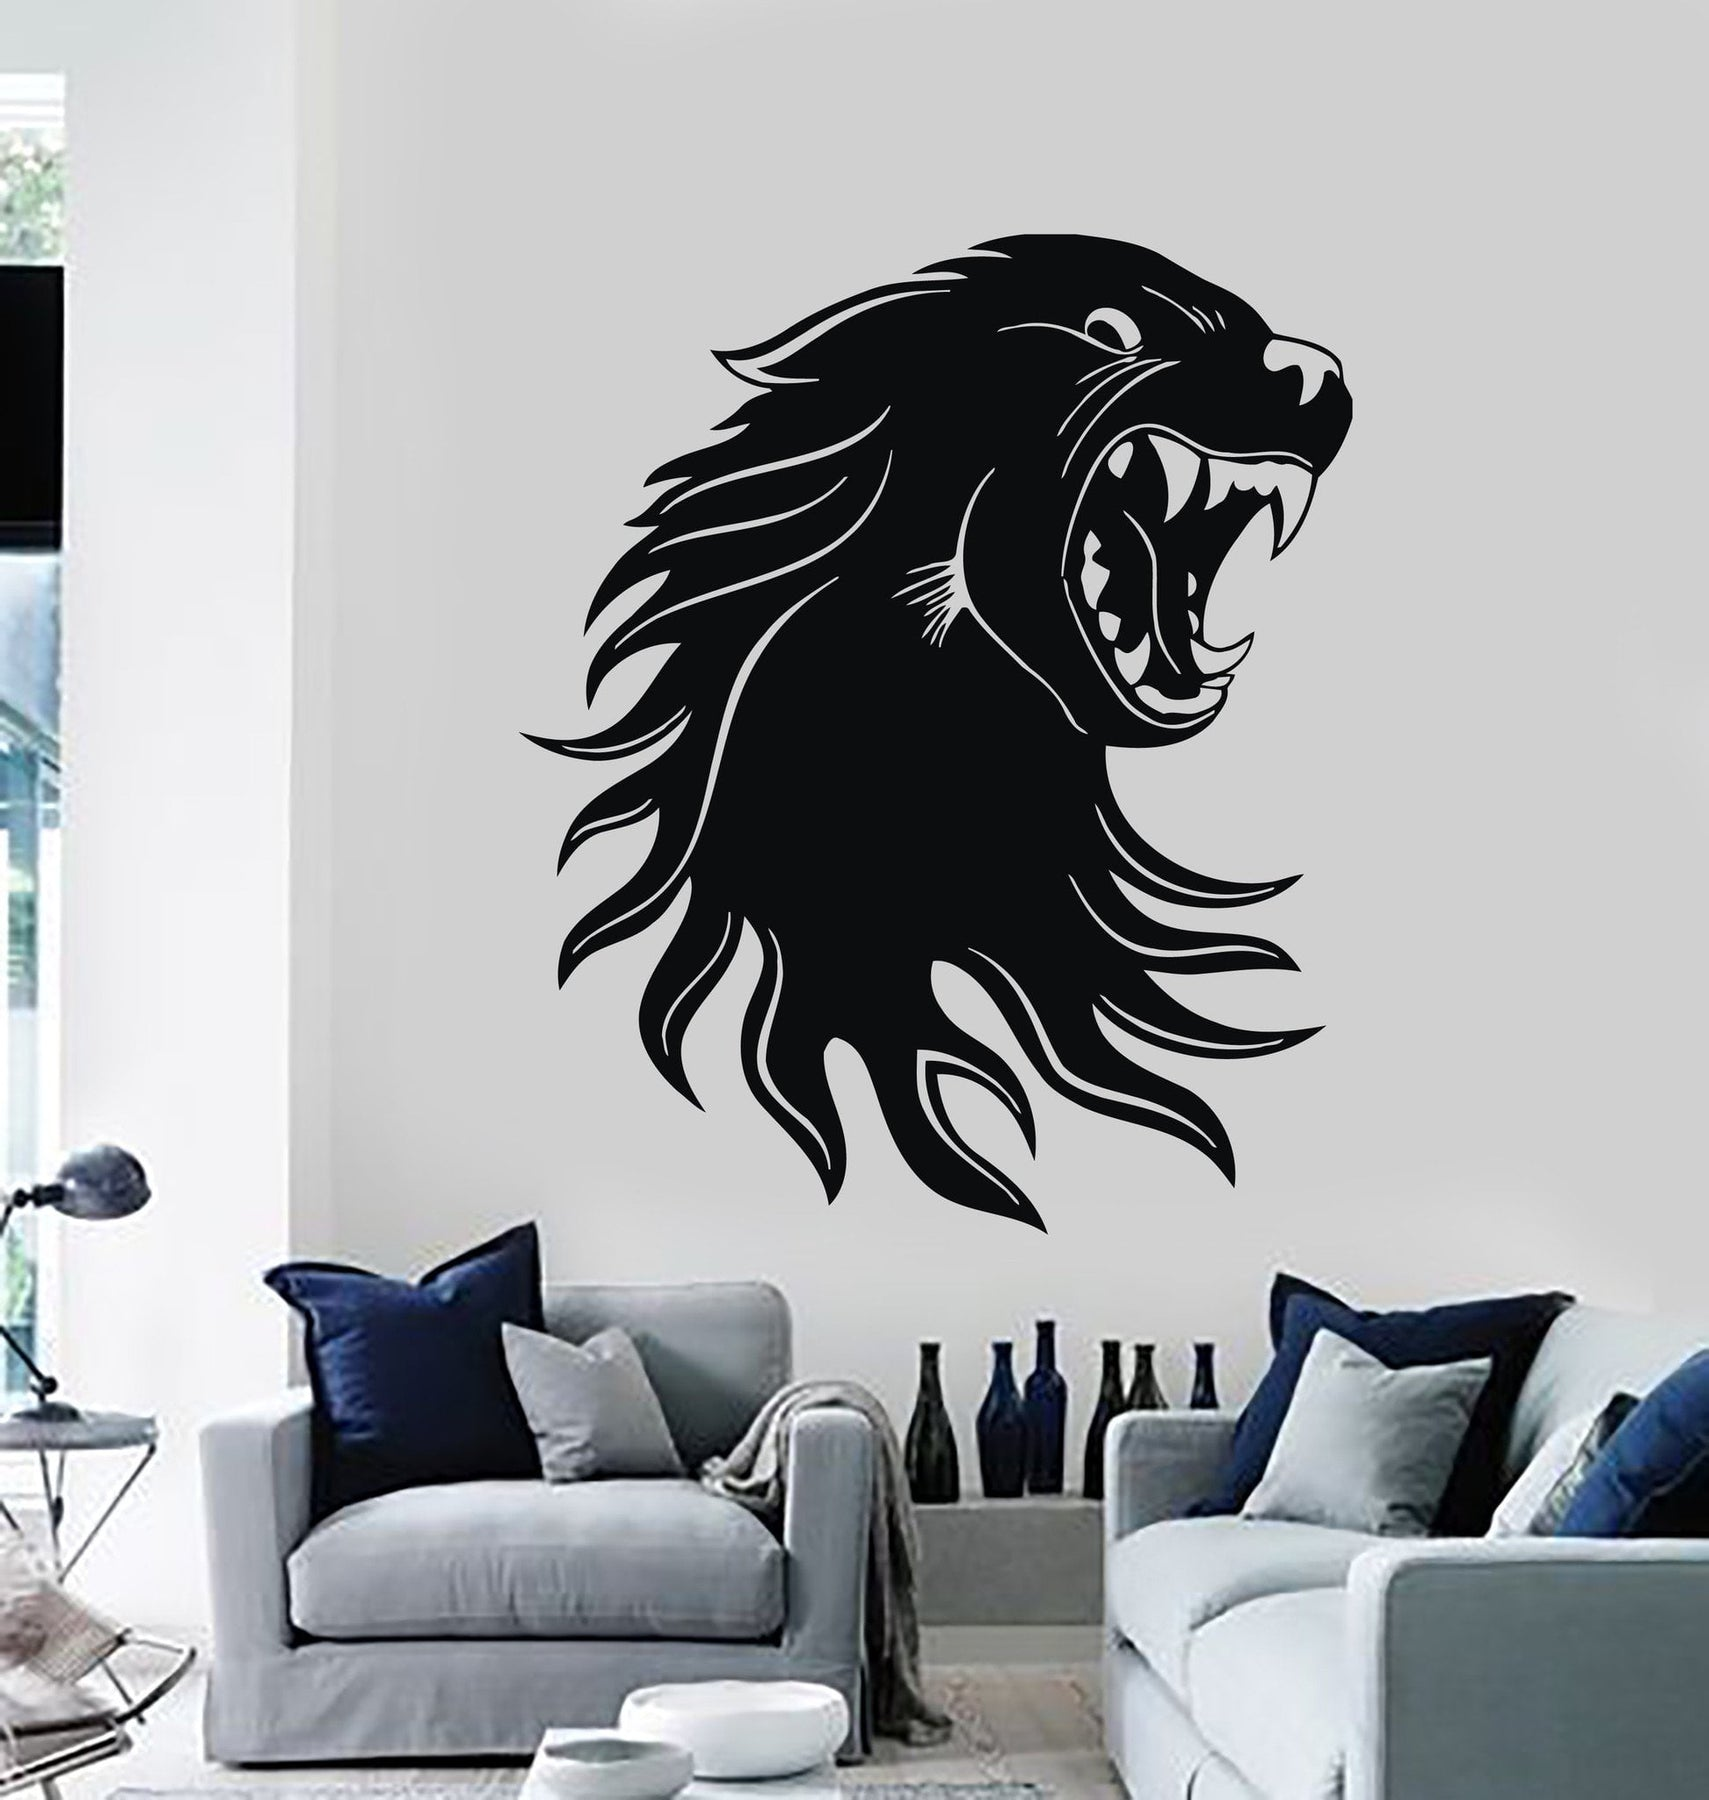 Tap or pinch to zoom wall stickers vinyl decal cougar panther predator